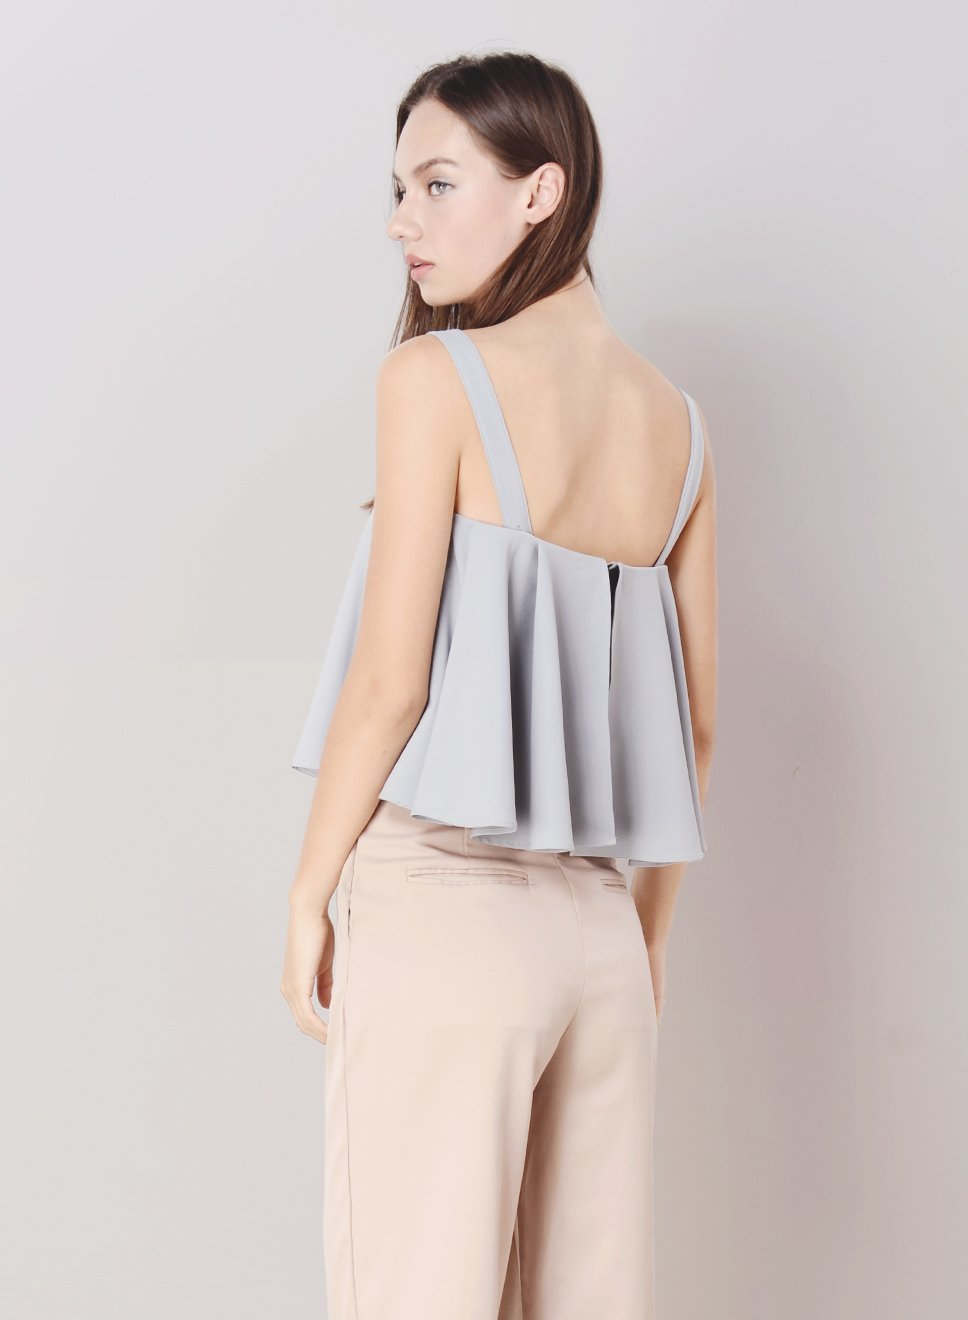 CASCADE Pleated Flare Top (Lilac Grey) at $ 21.00 only sold at And Well Dressed Online Fashion Store Singapore